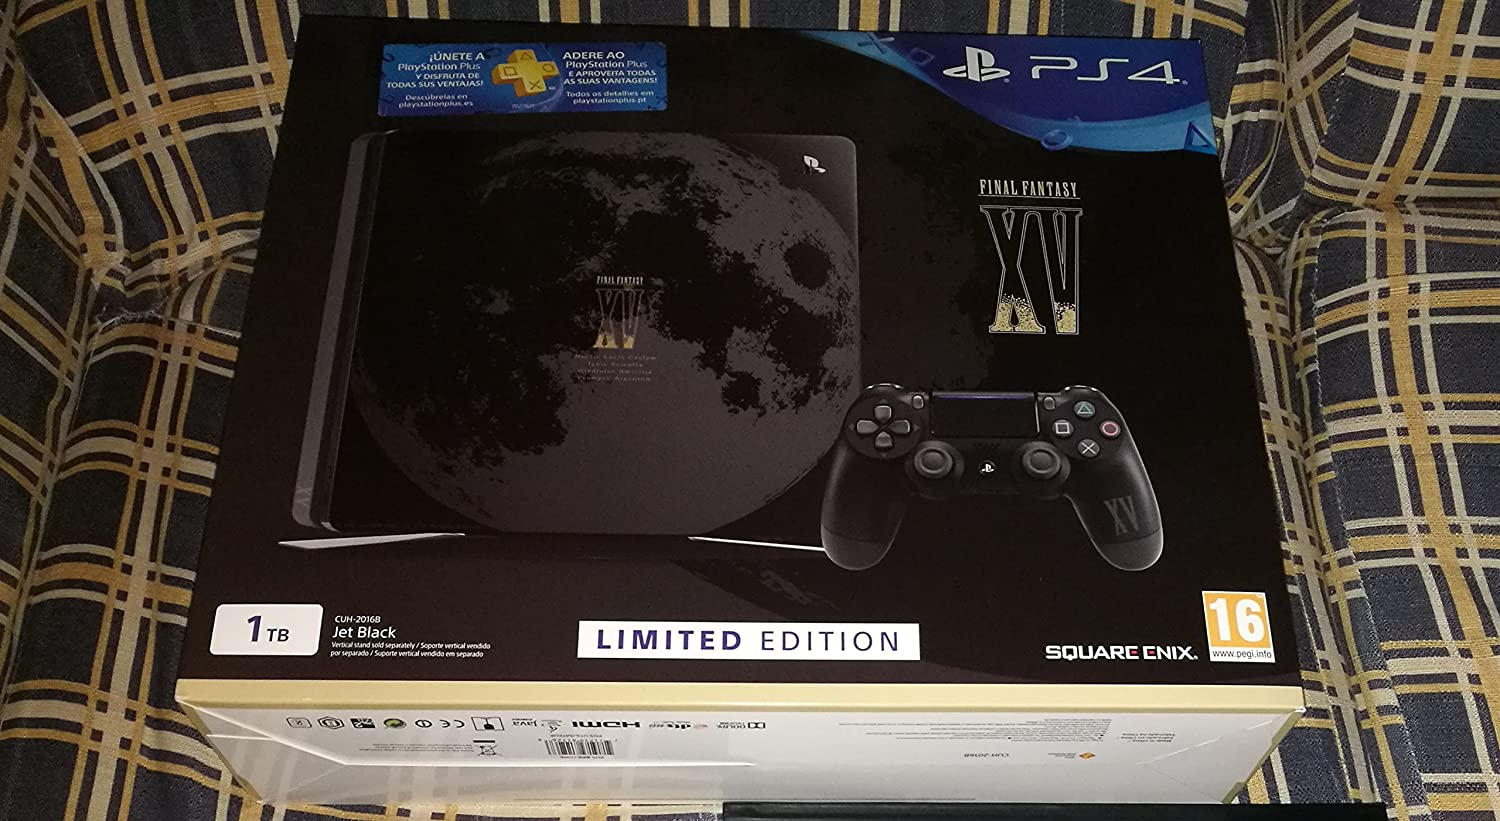 Consola PS4 Slim Final Fantasy XV Limited Edition PAL ESP: Sony ...